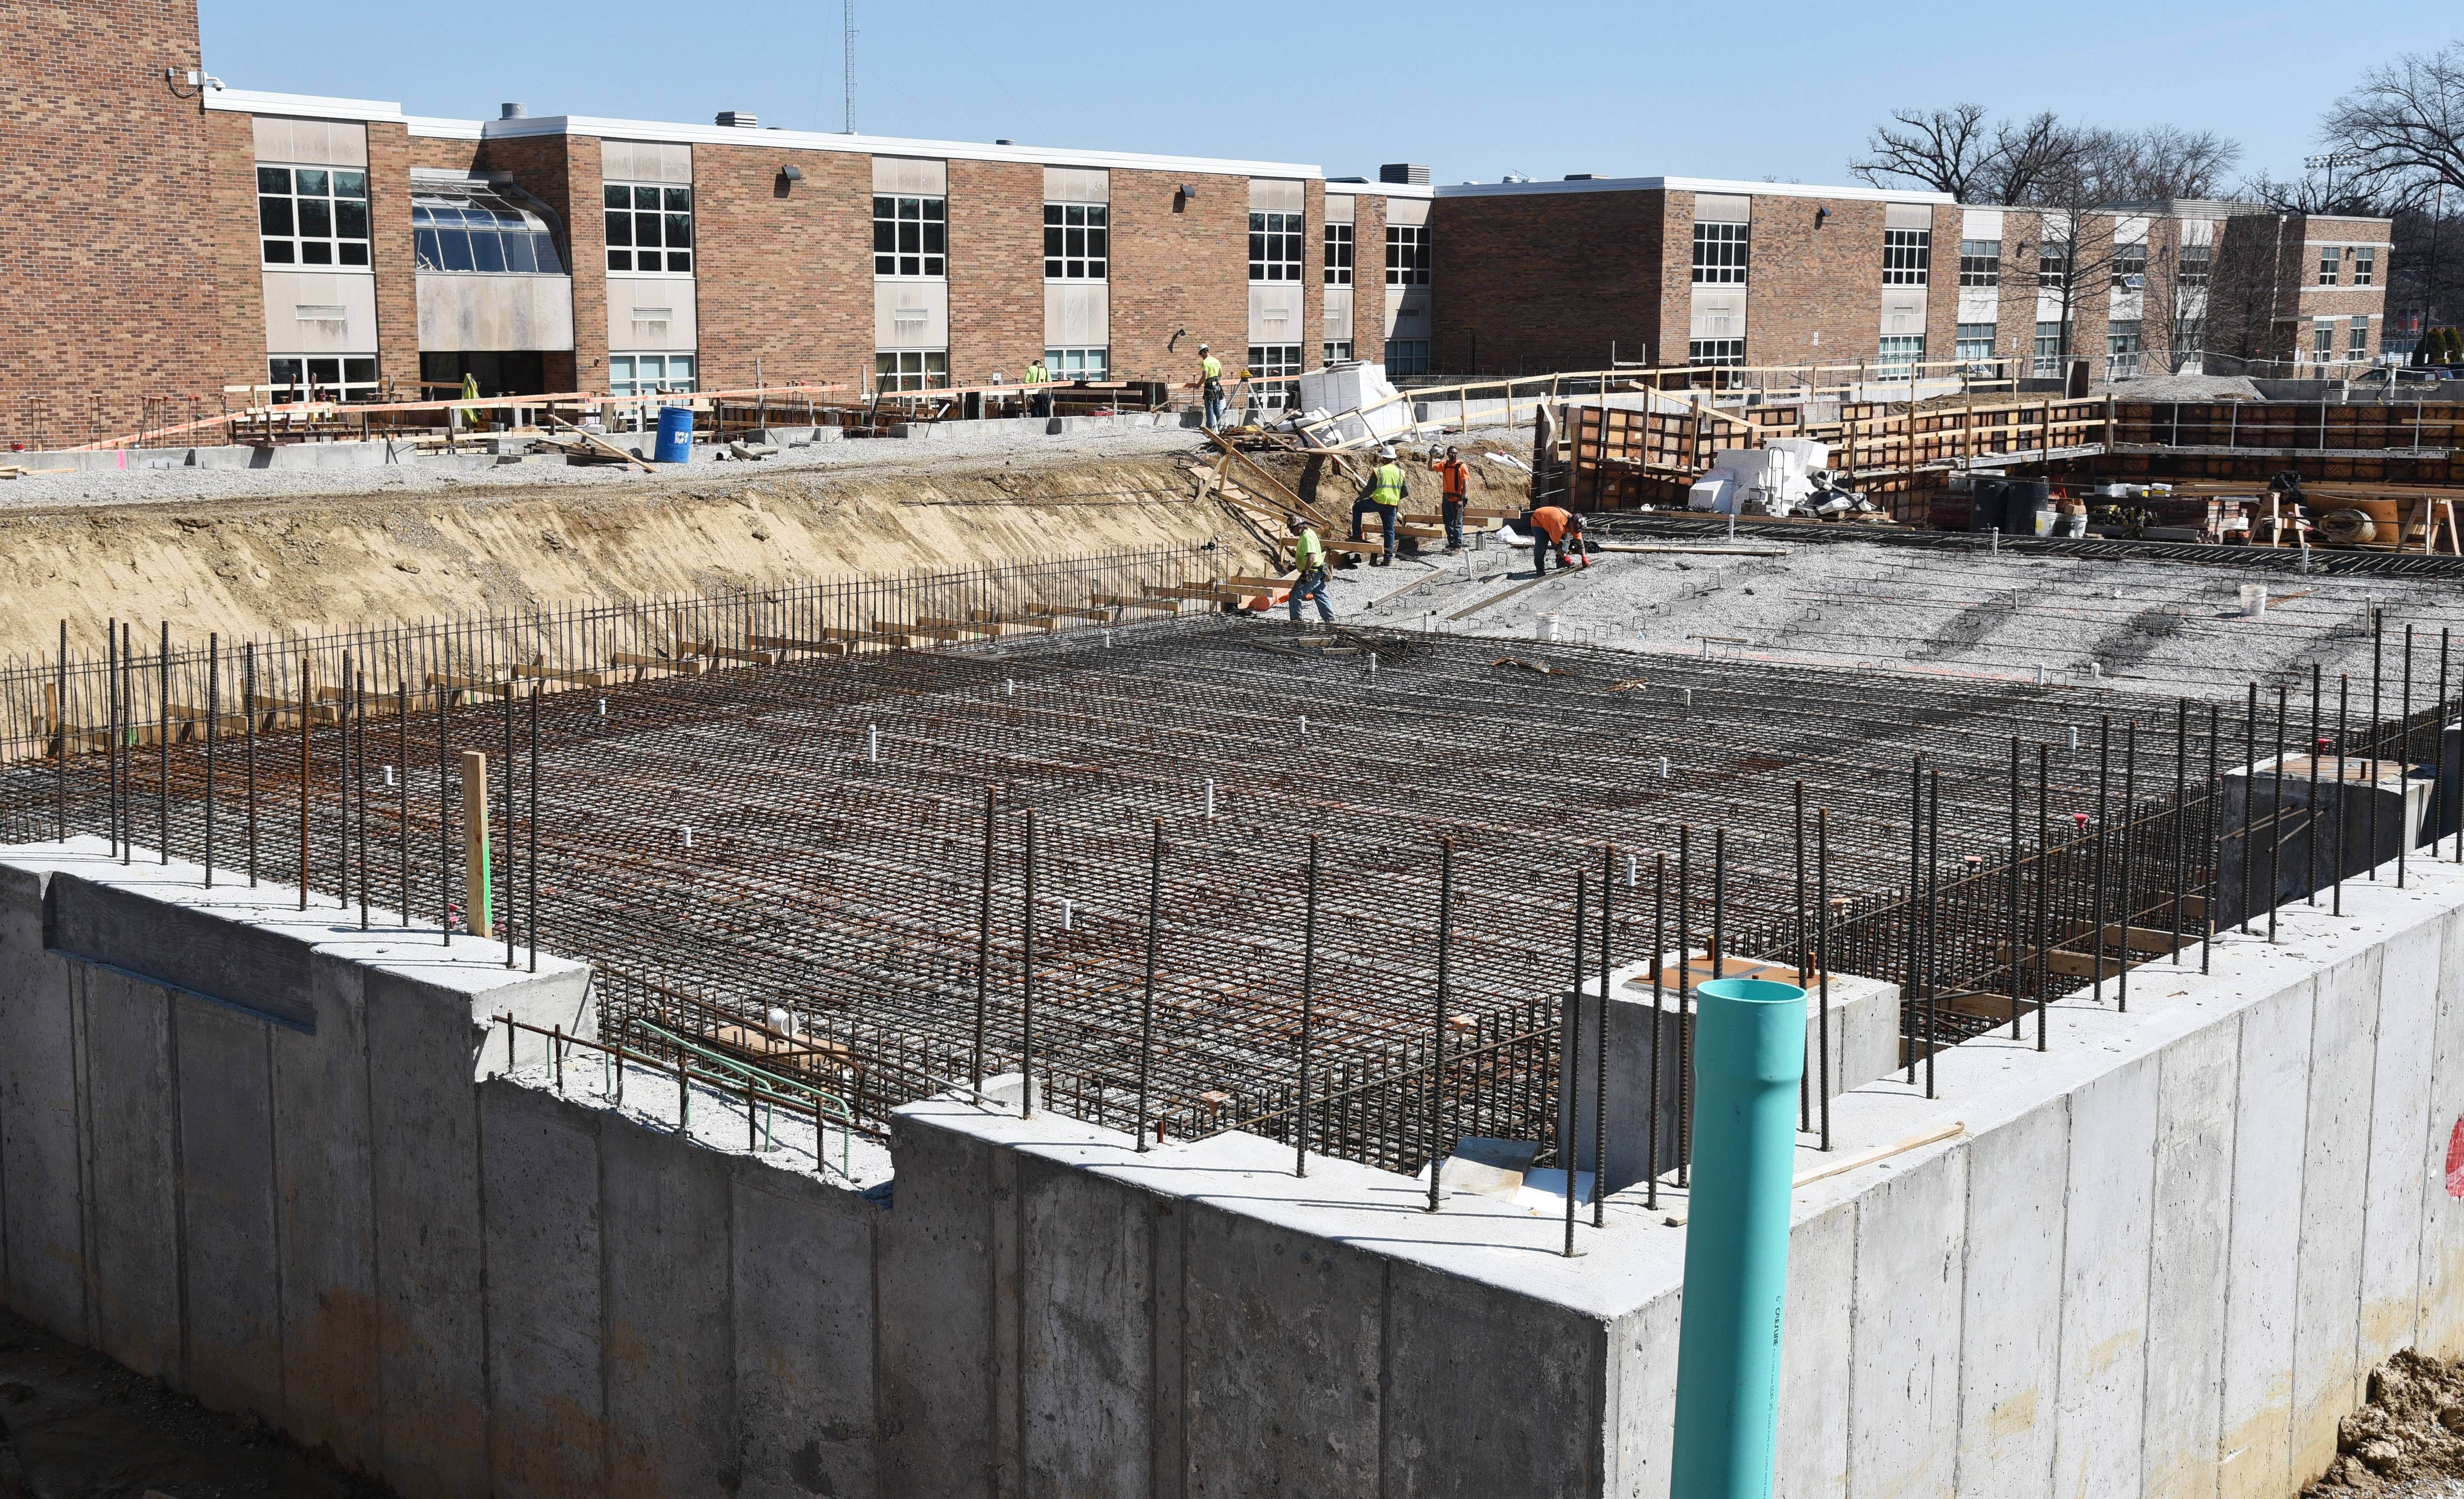 Construction of a new indoor swimming pool at Libertyville High School is continuing smoothly. The $21.5 million project is on budget and still expected to be completed as scheduled in spring 2019.